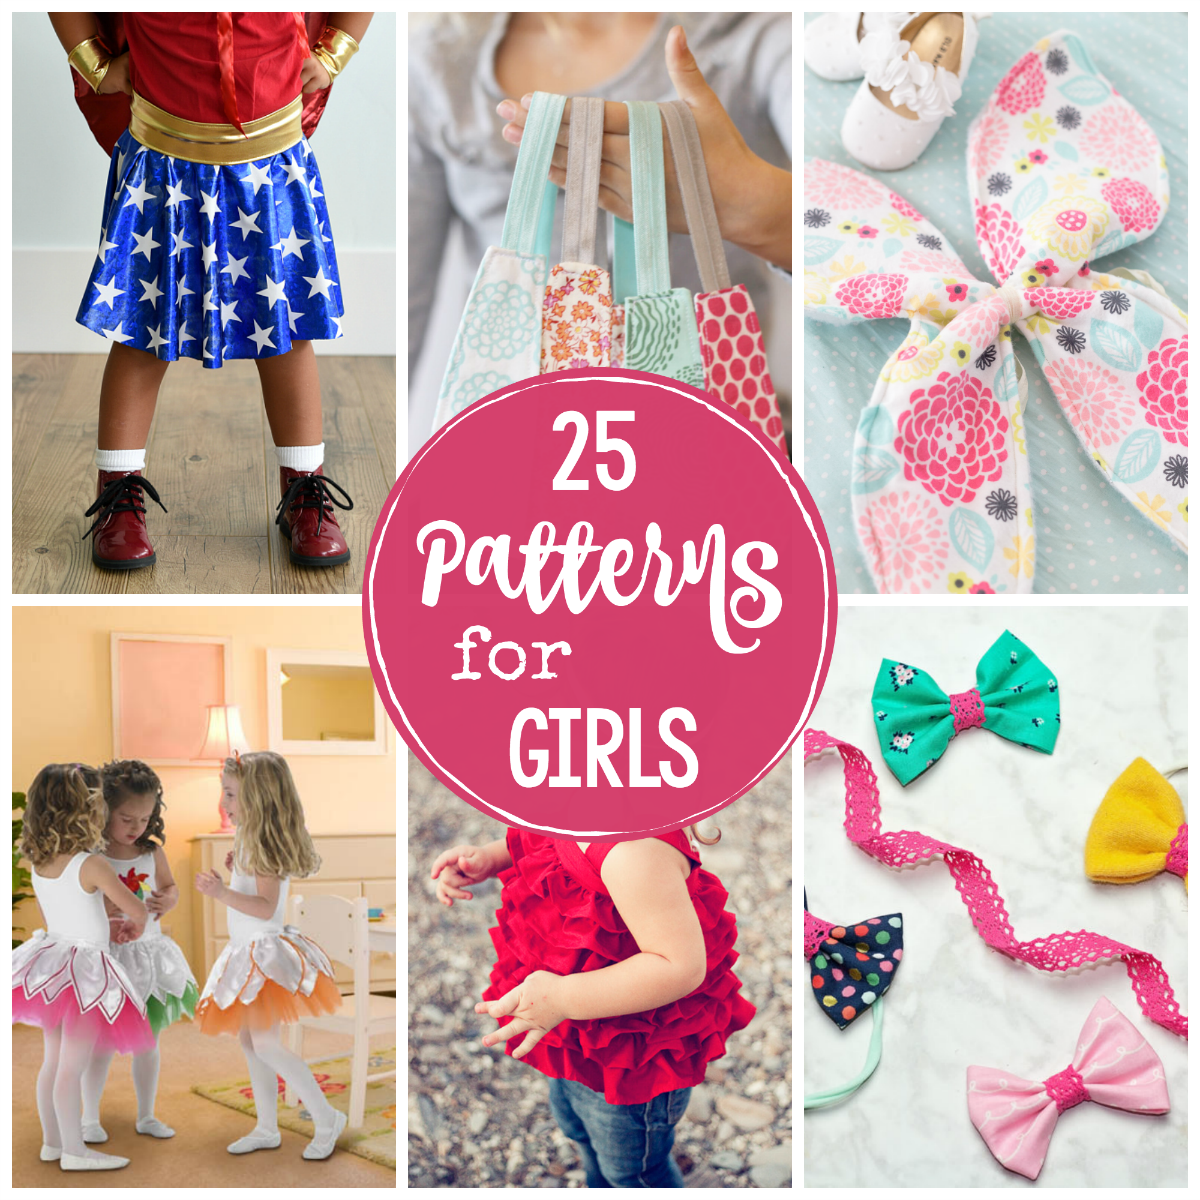 image regarding Free Printable Pillowcase Dress Pattern known as 25 of the Cutest Styles for Females - Insane Small Assignments